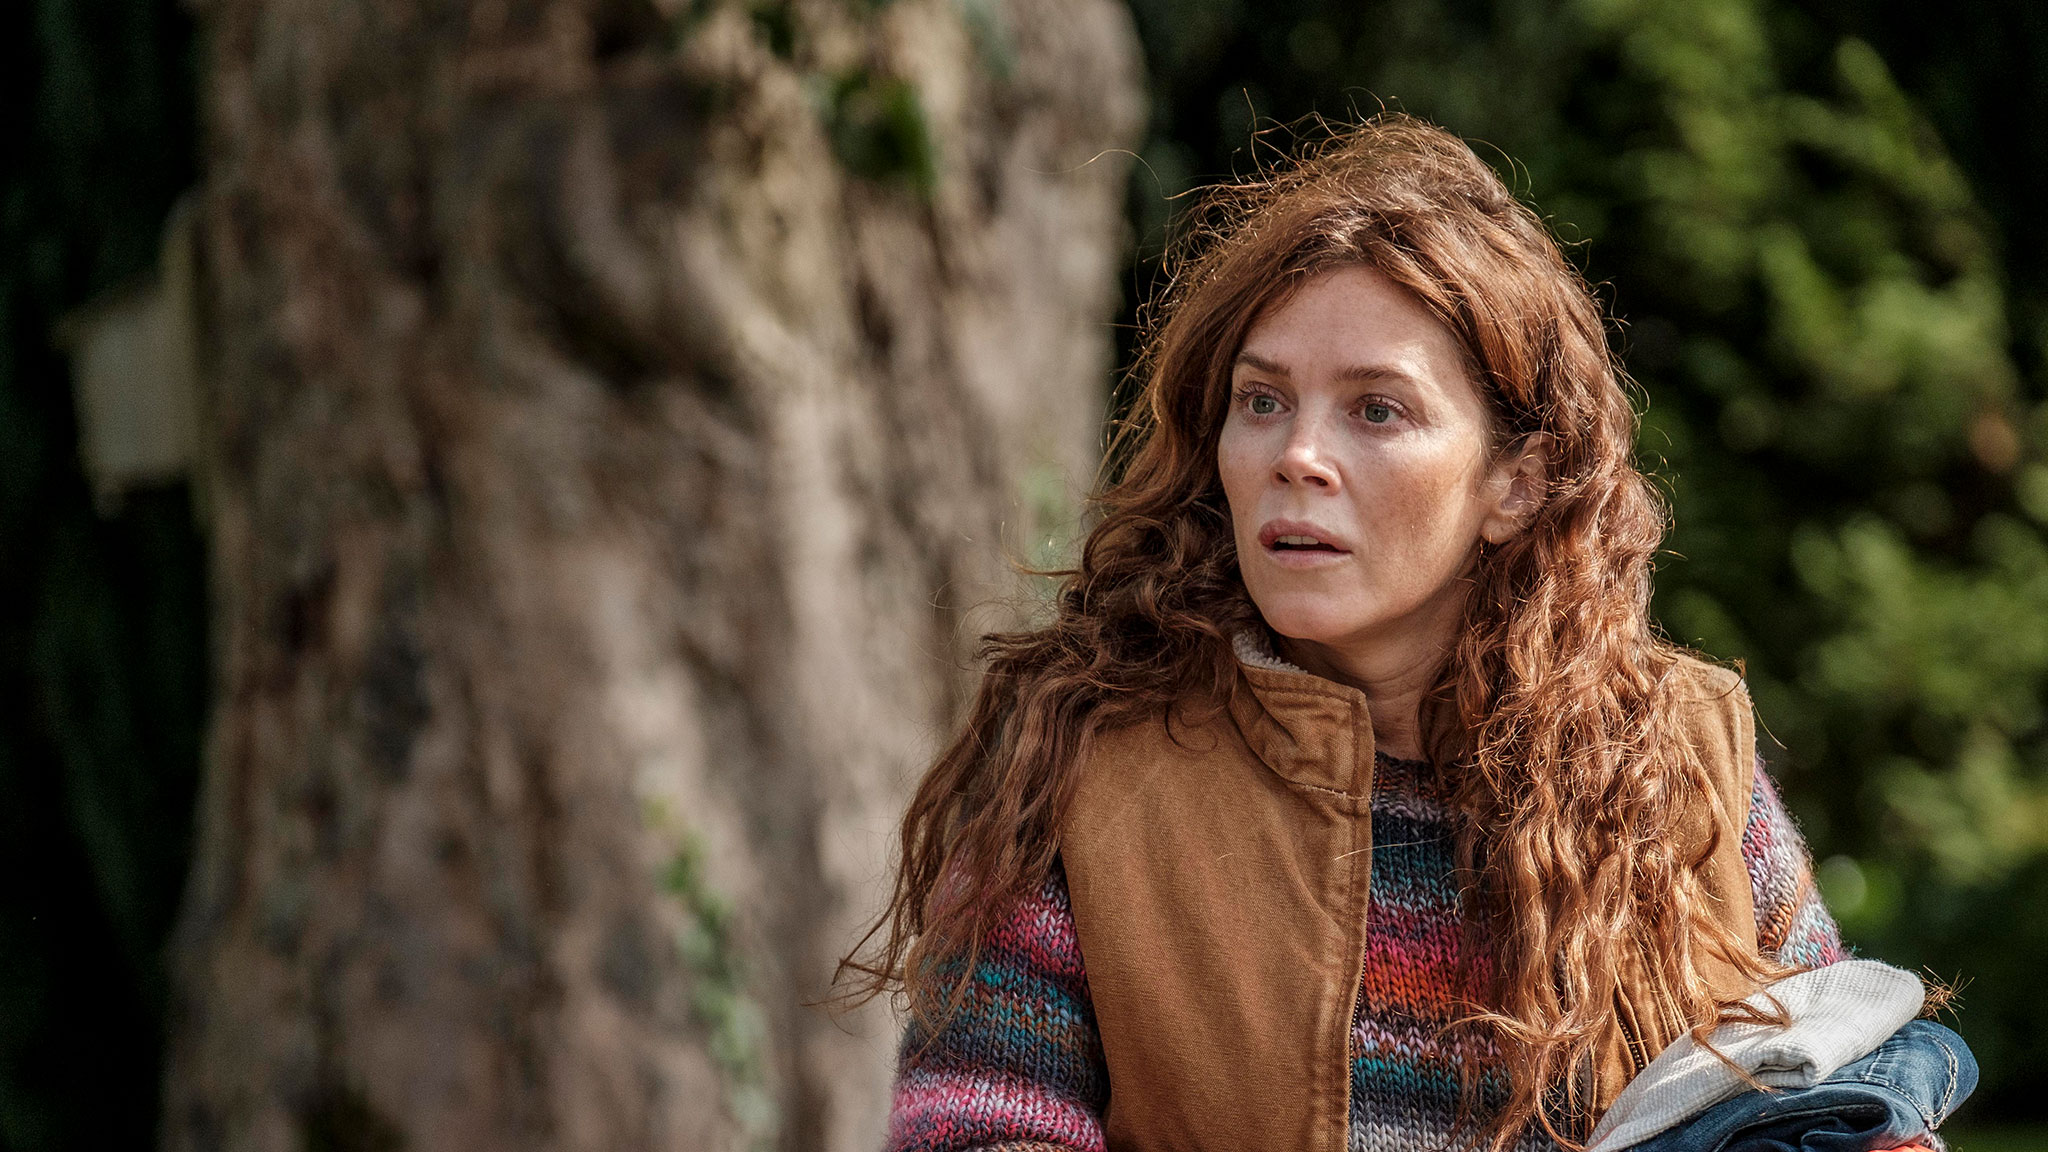 74 New British TV Shows in 2019: Dramas, Comedies, Mystery Series 14